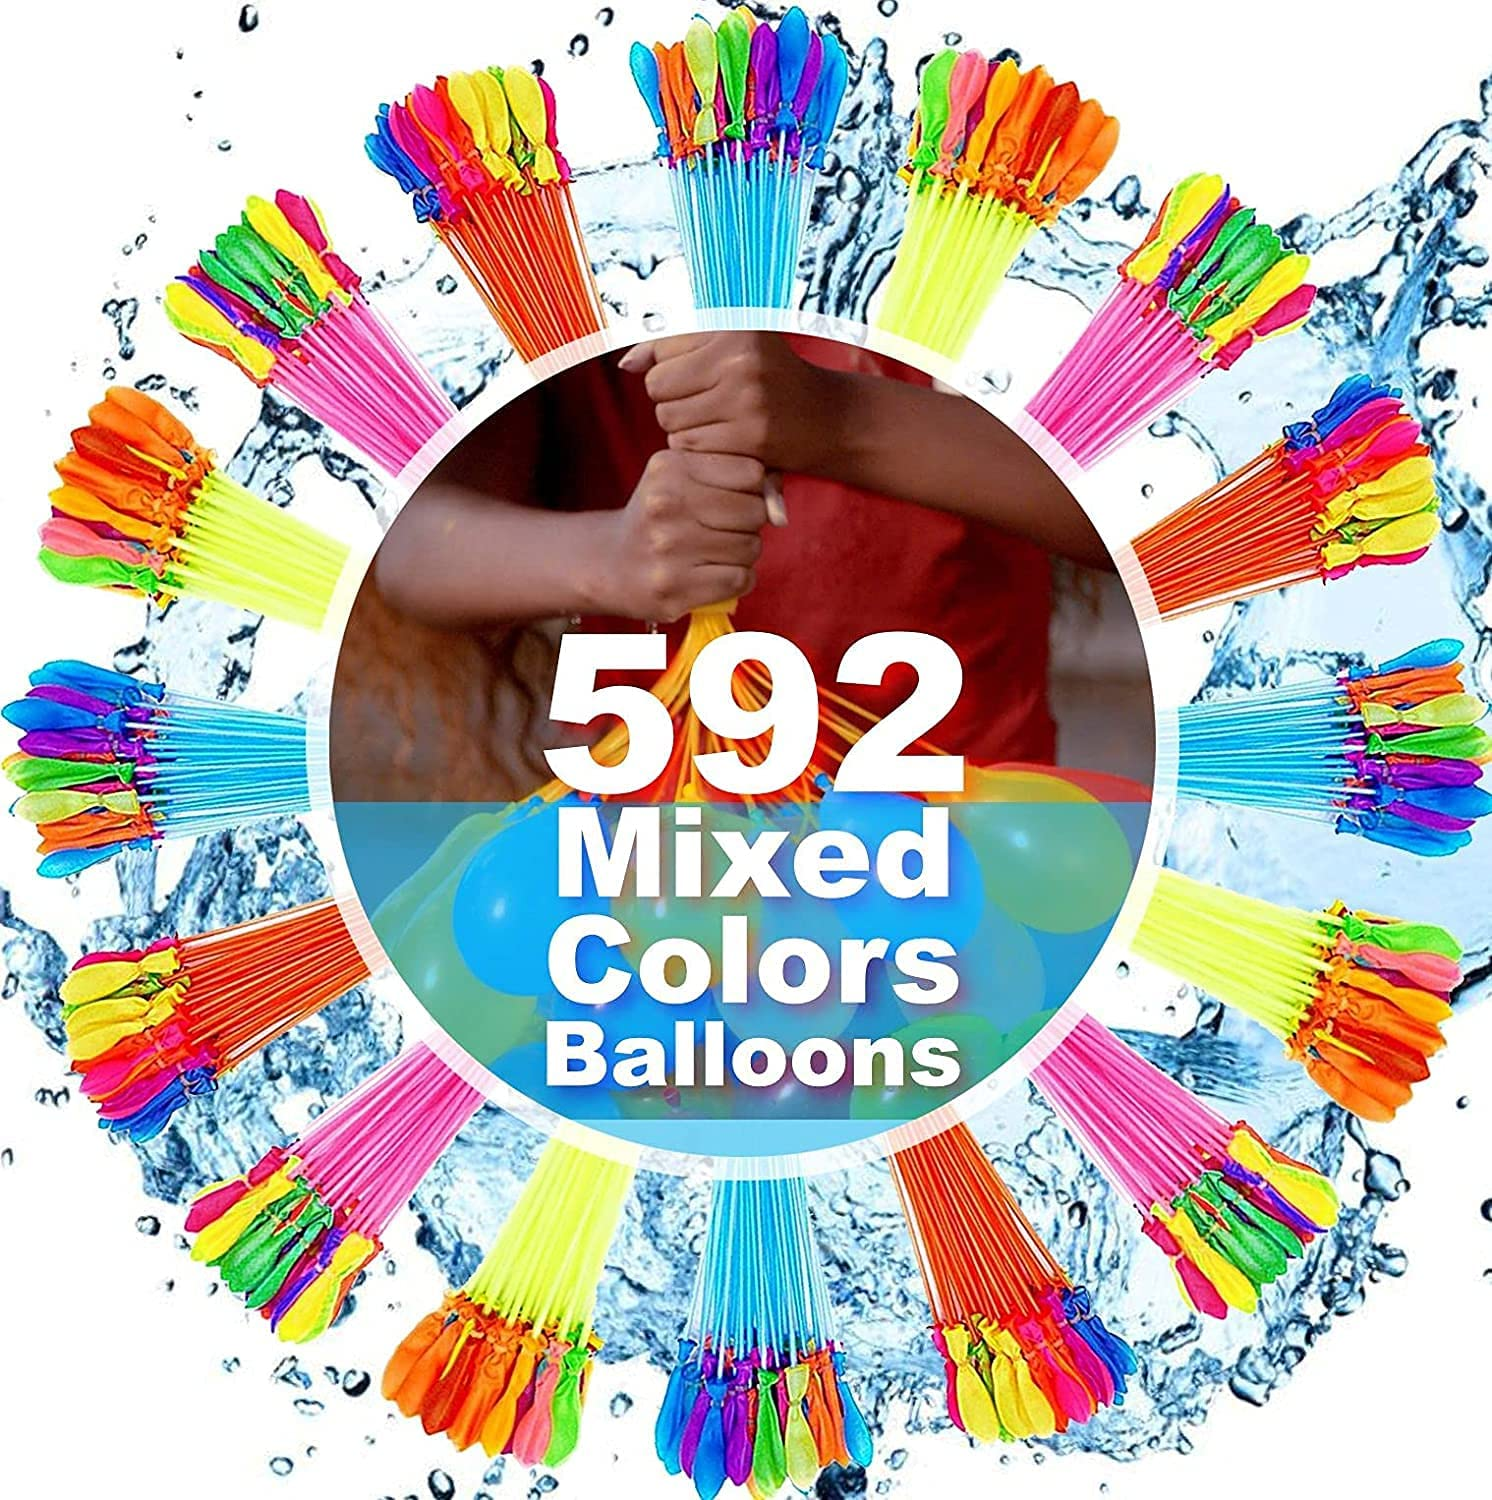 New mail order JOYGETIN Water balloons Special sale item quick fill self 592 for Ball sealing PCS